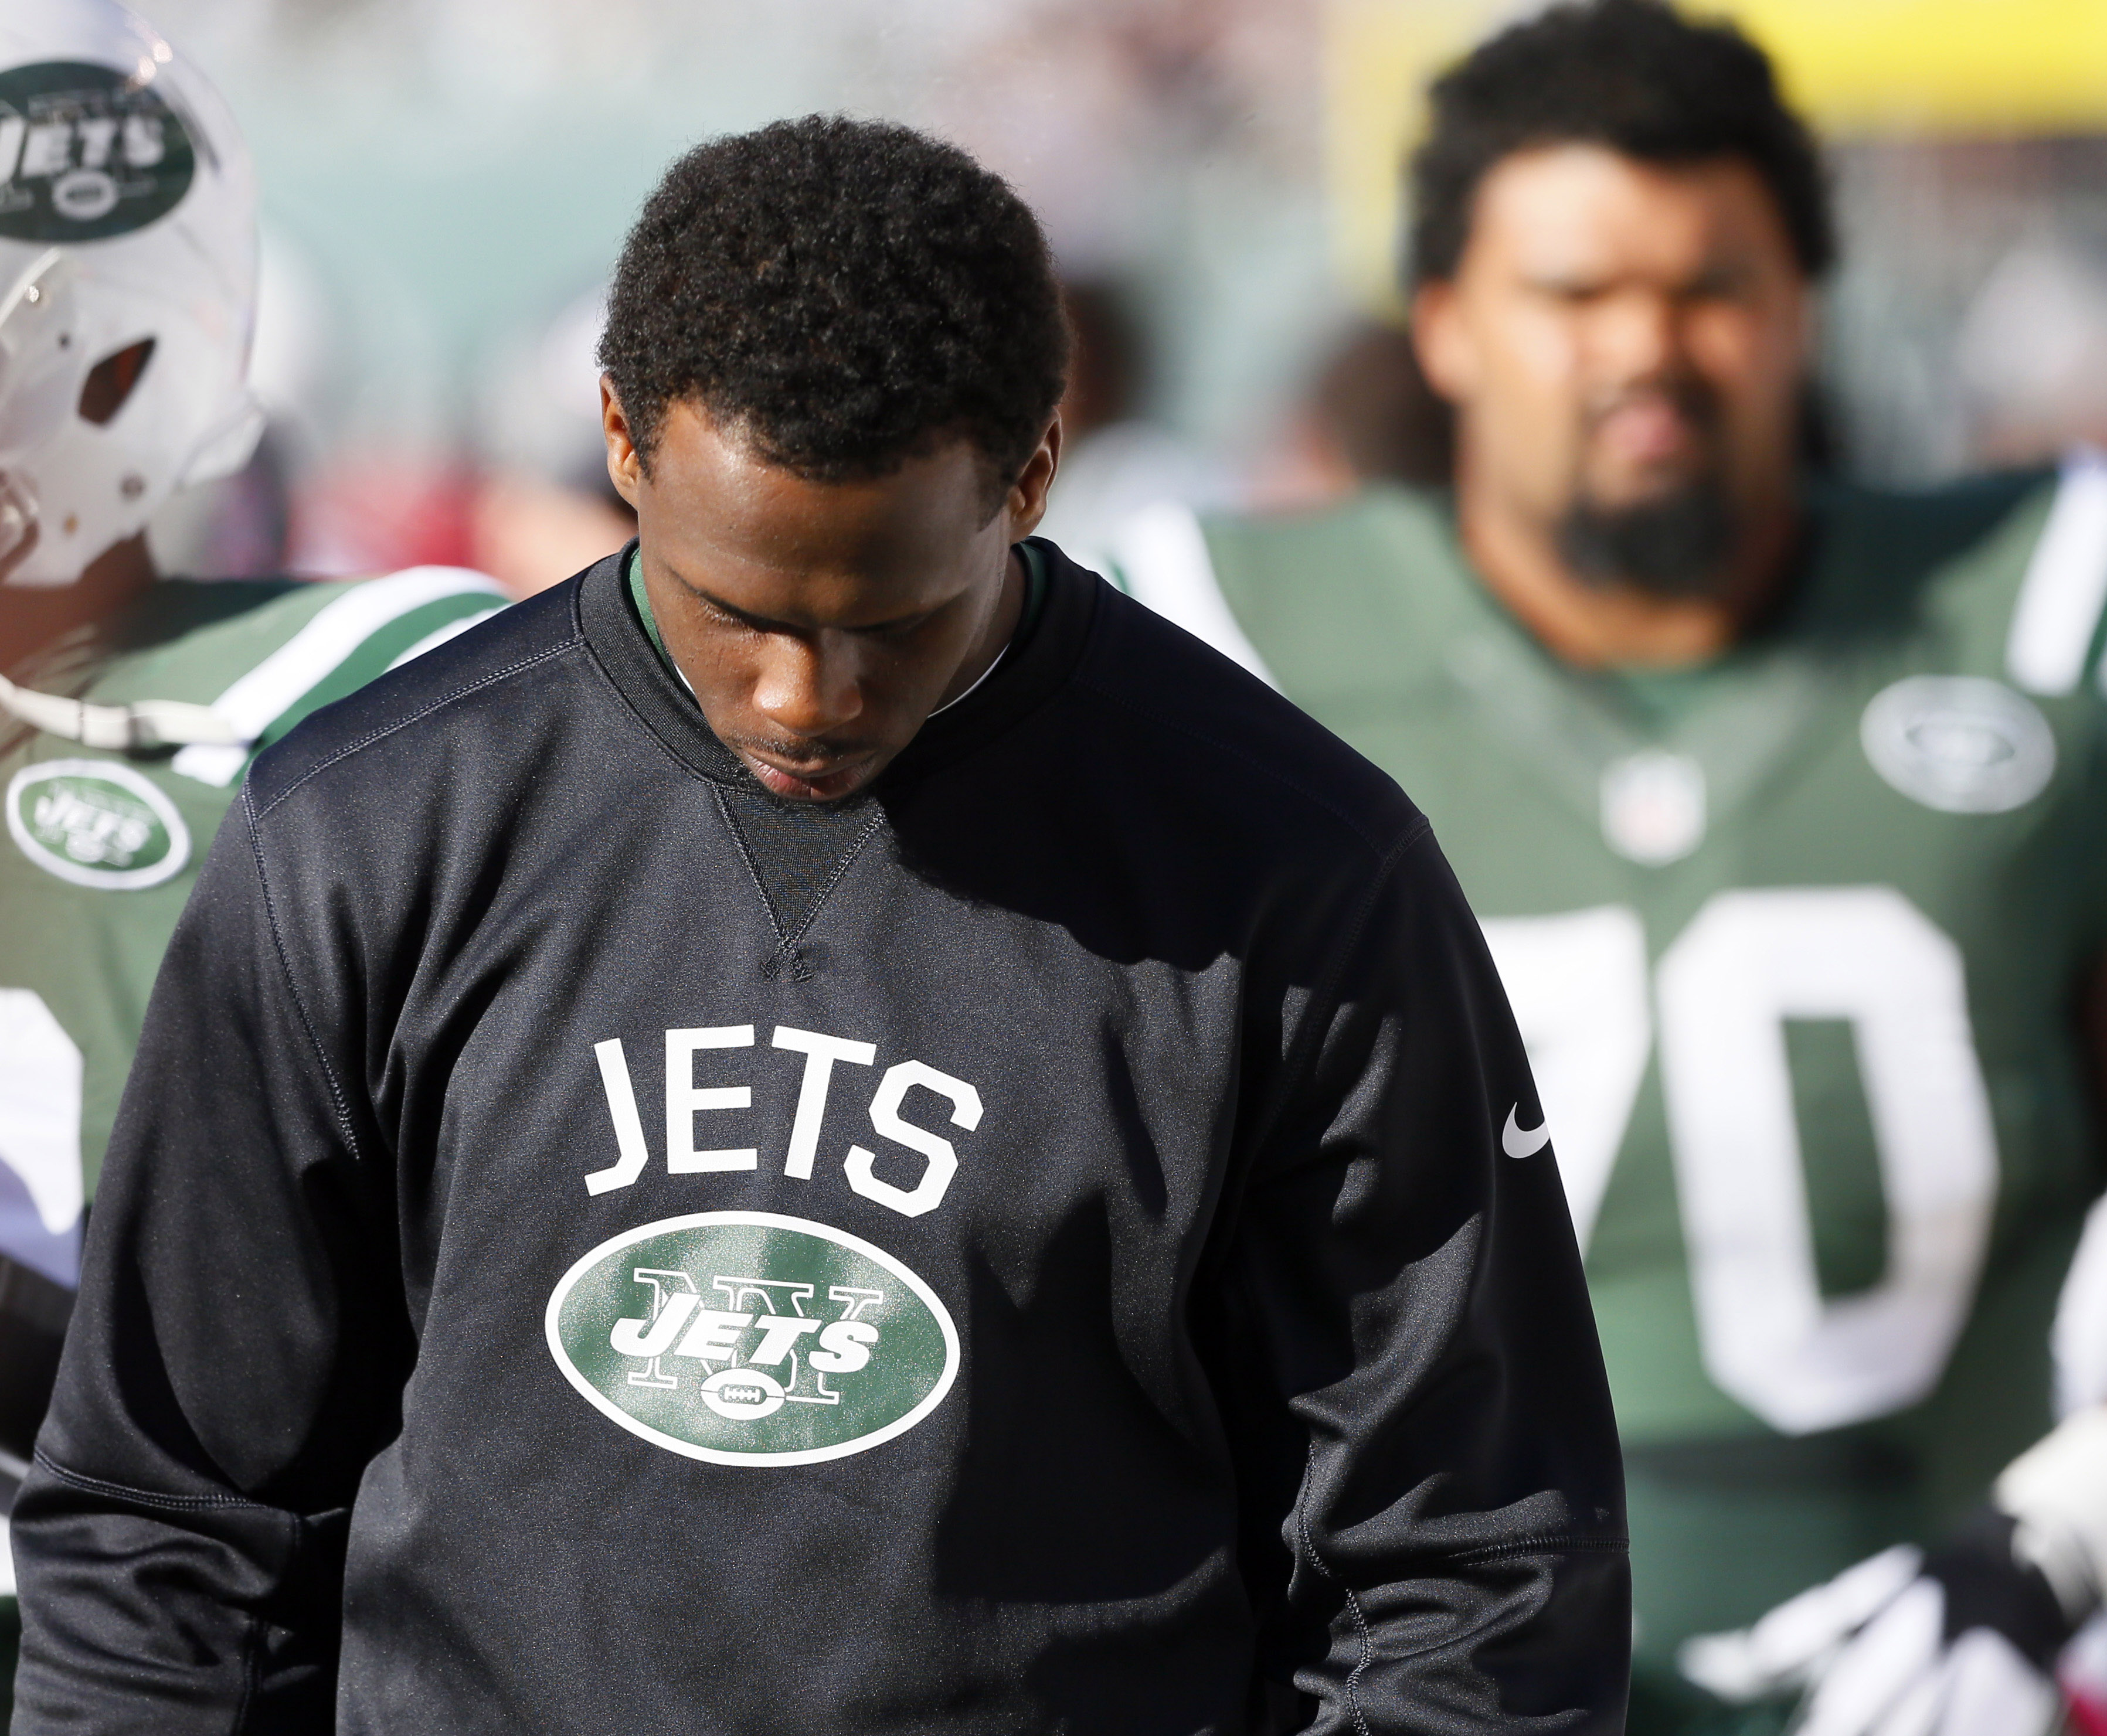 New York Jets: Geno Smith Out For Season With Torn ACL (Report)